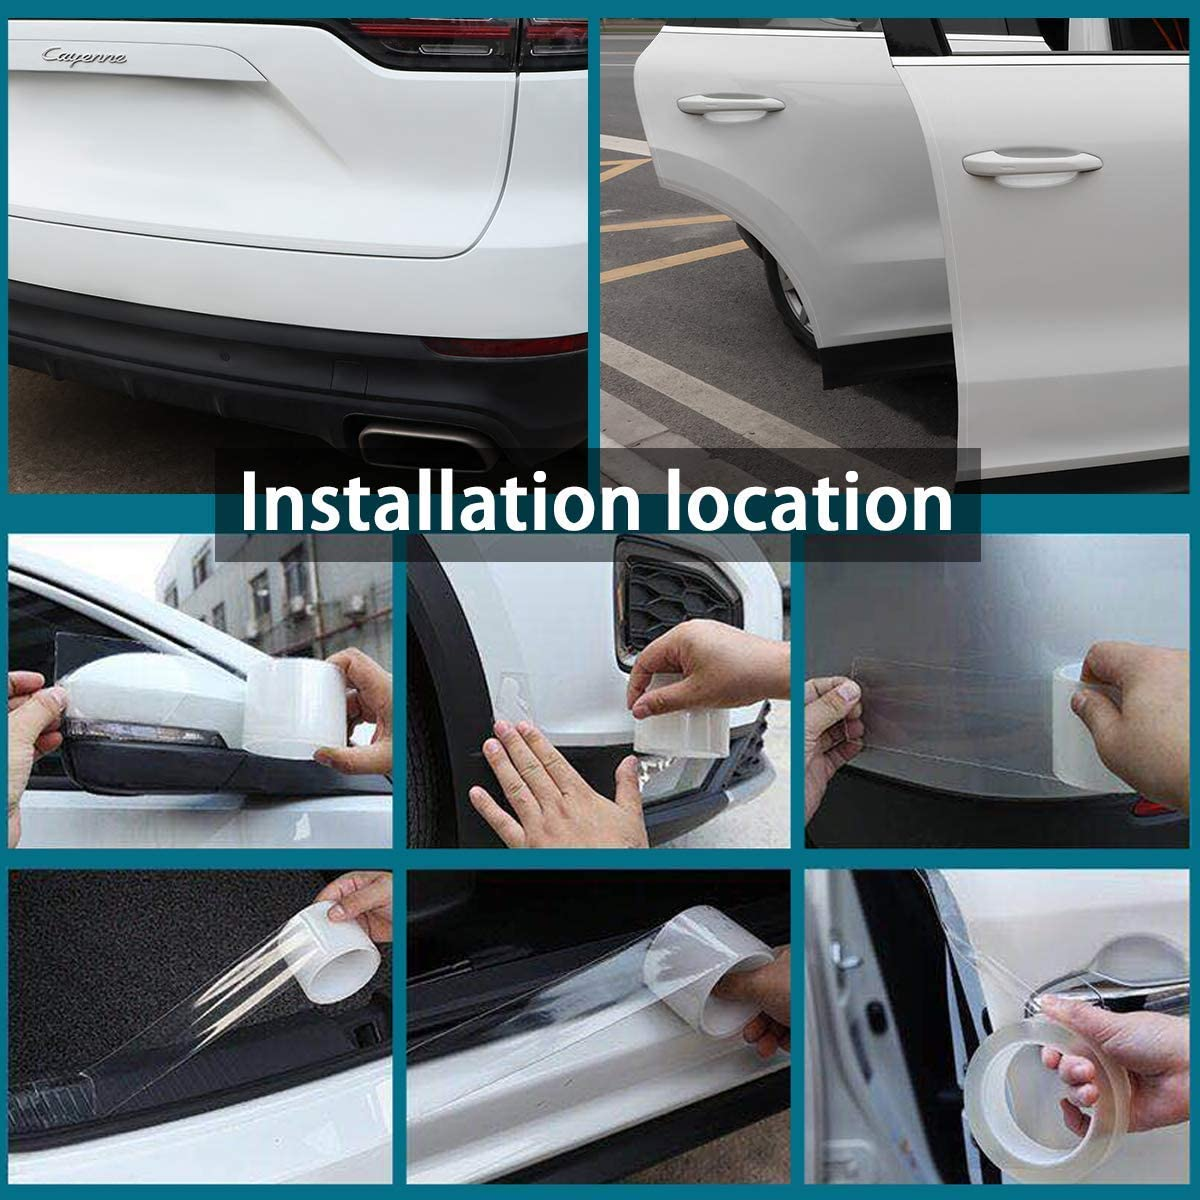 1.97inW WeTest Car Door Edge Guards Clear Seal Strip,Door Entry Guards Scratch Transparent Cover Fits for Most Car 33ft